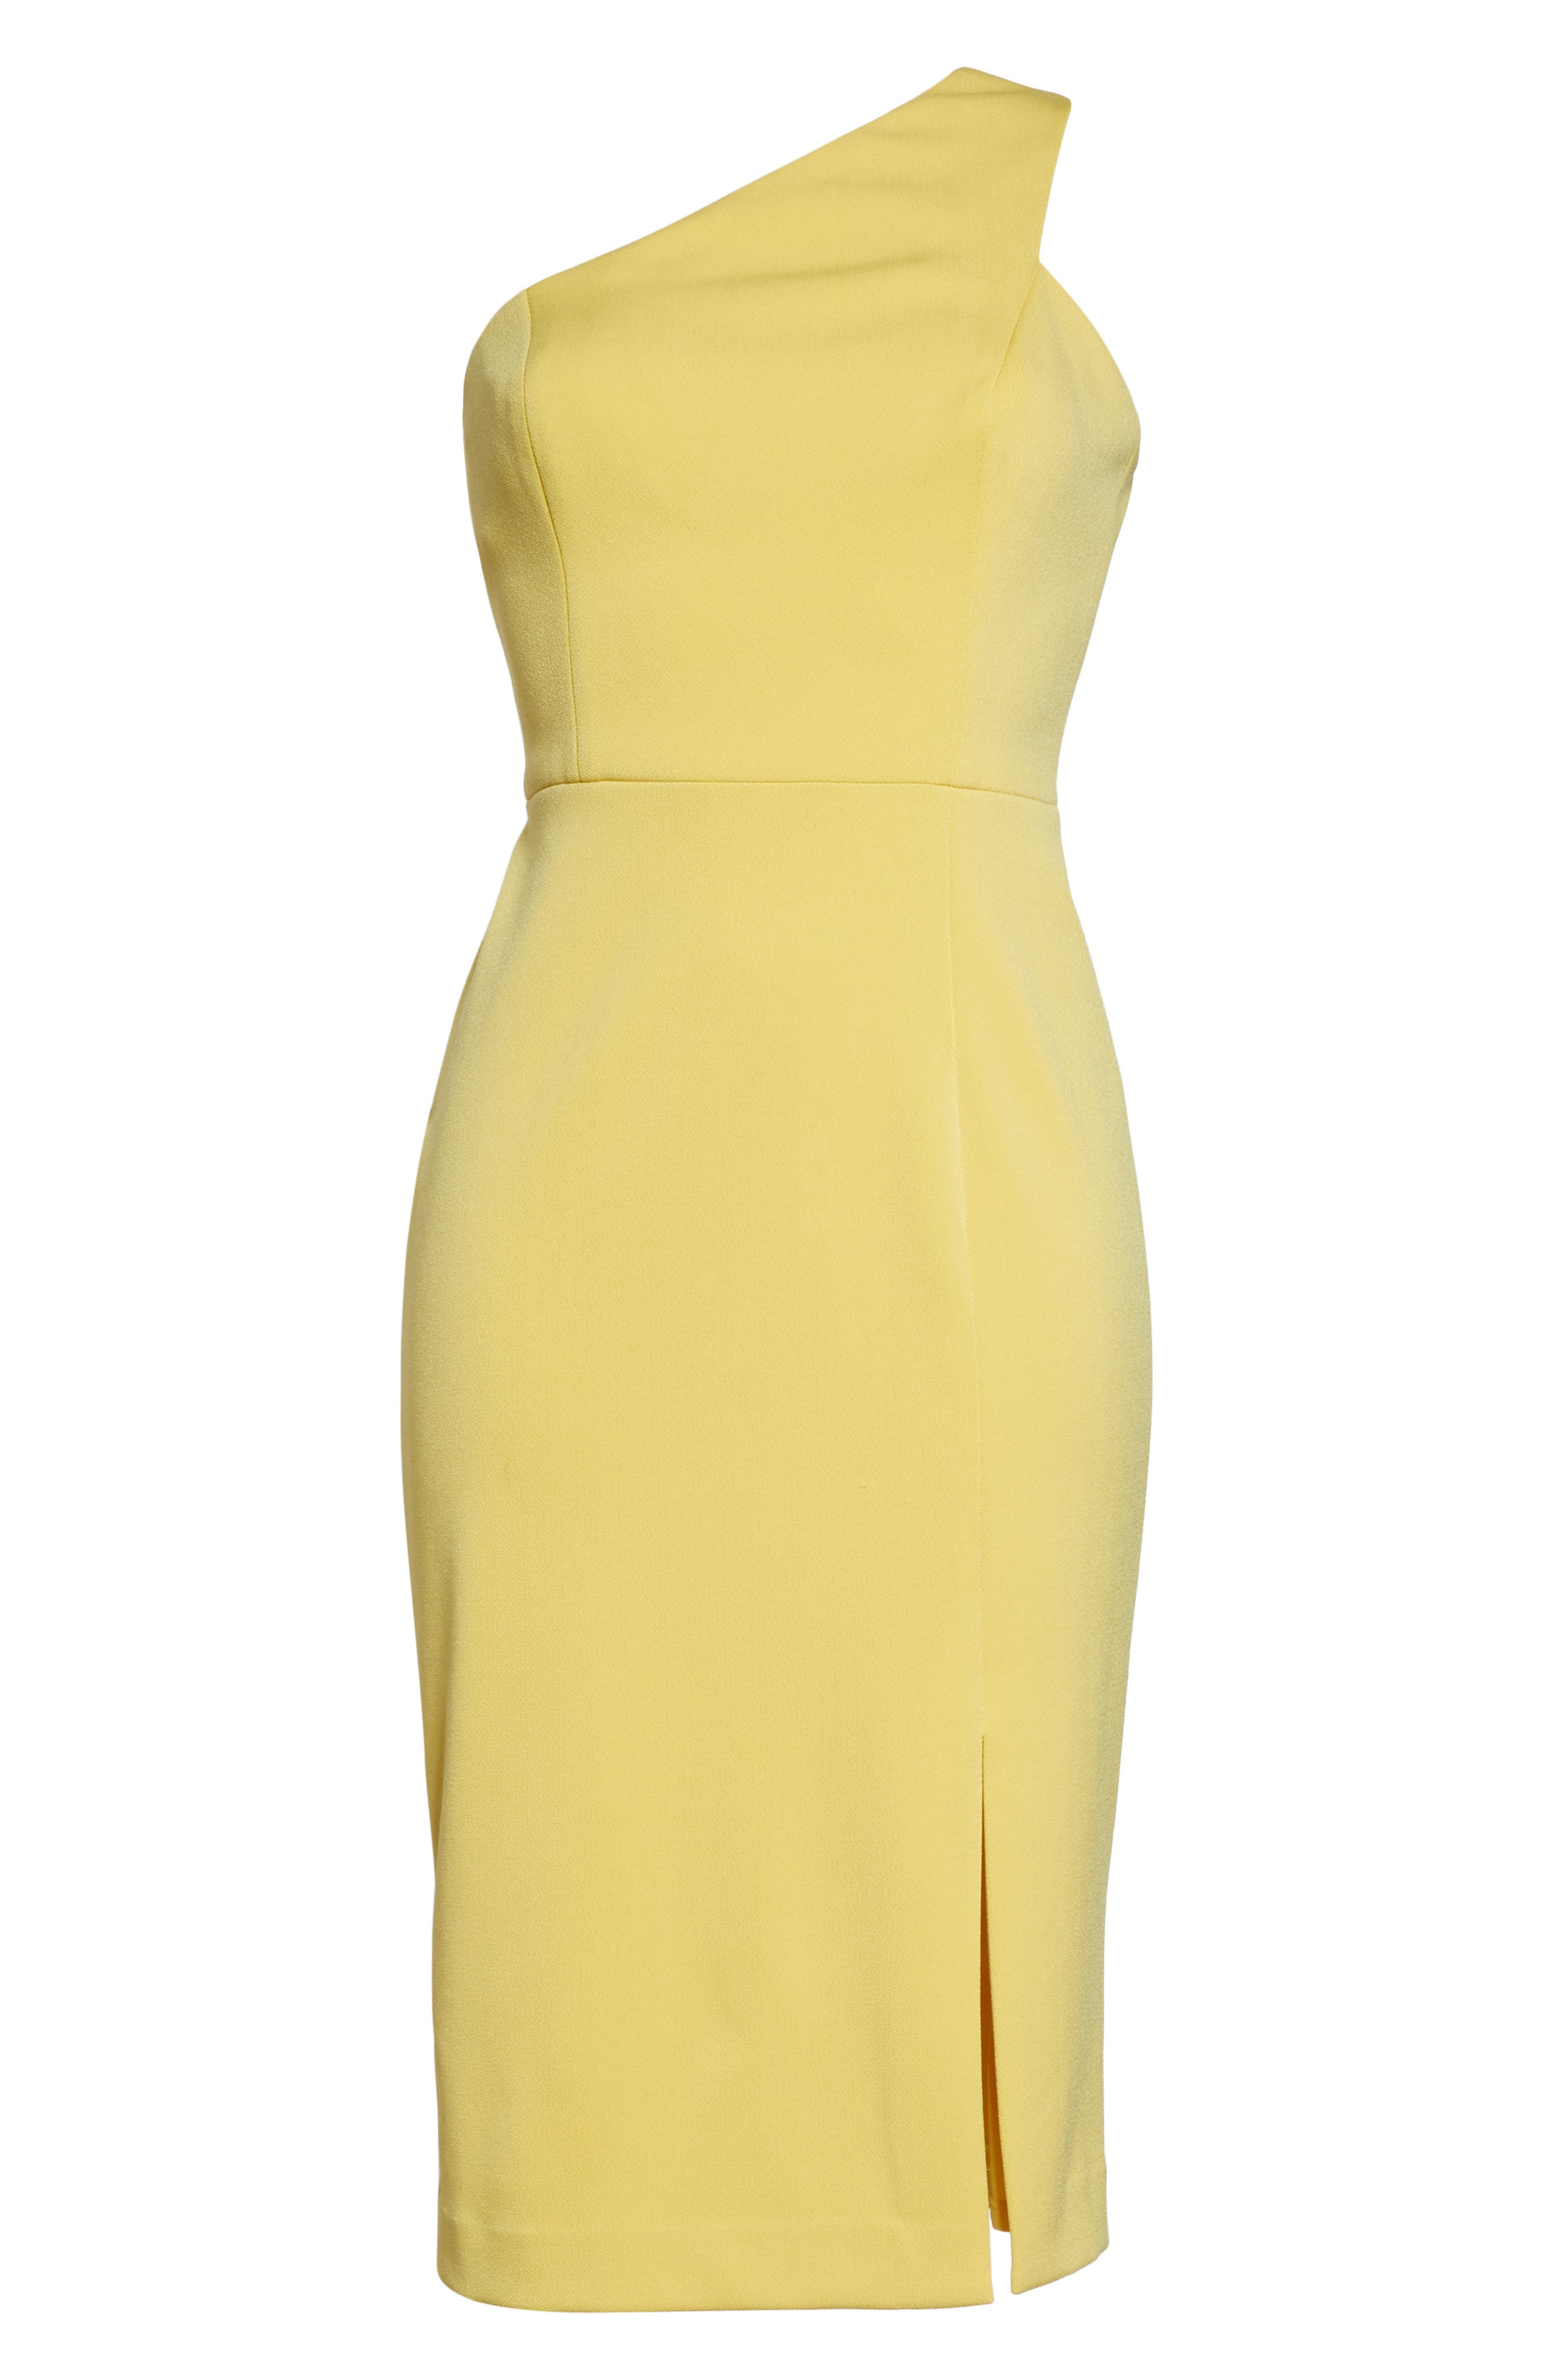 One-Shoulder Sheath Dress,                             Alternate thumbnail 7, color,                             YELLOW